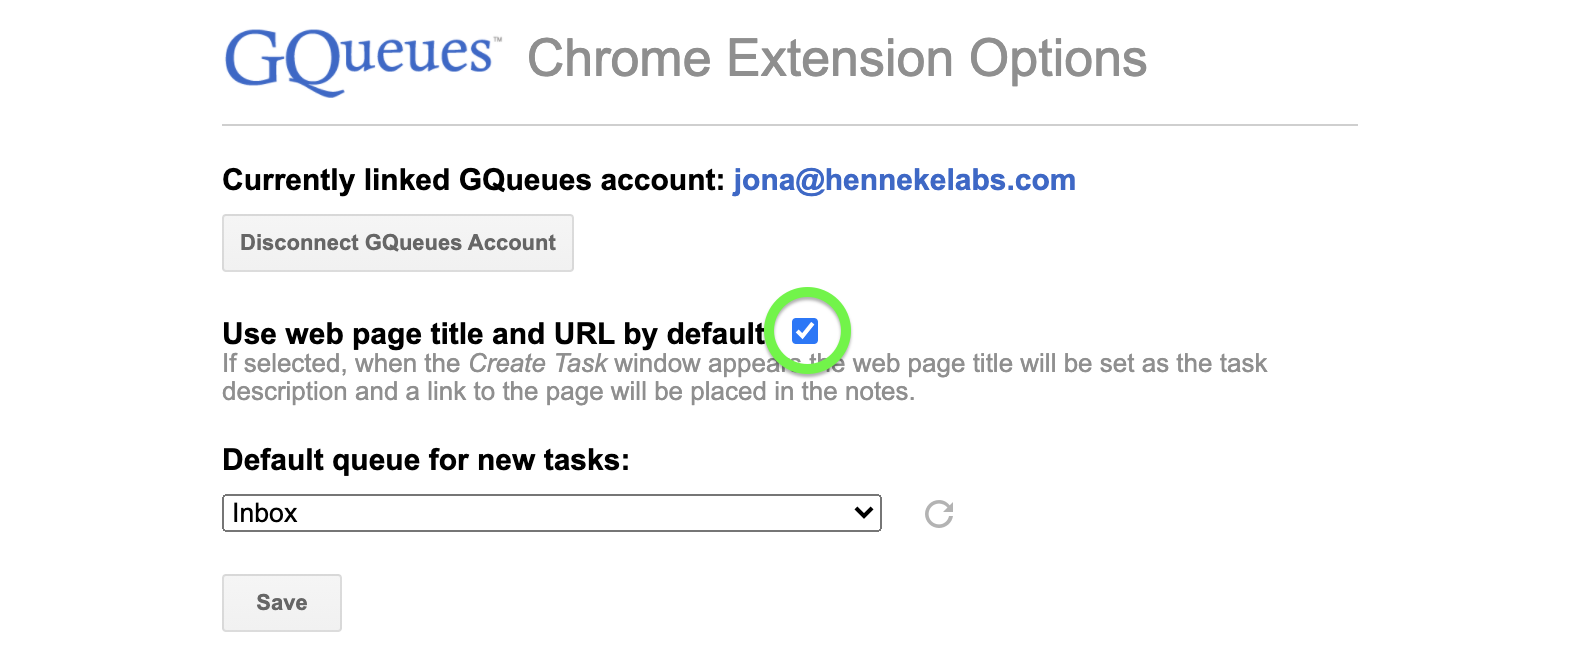 Toggle the setting to use web page title and URL by default.